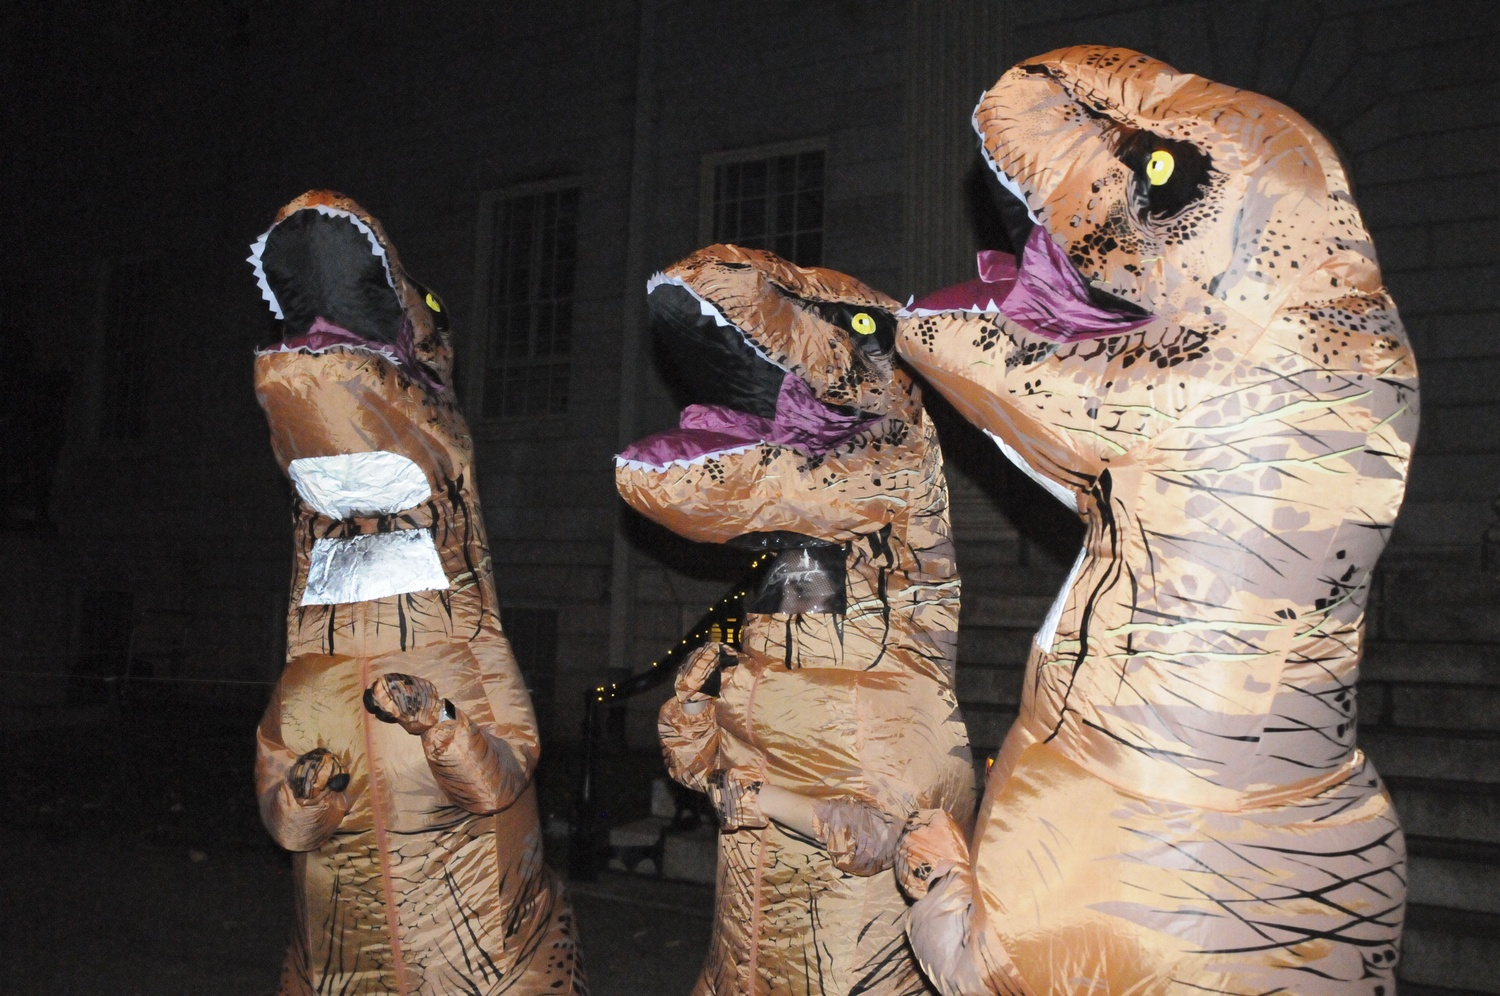 Students dressed up for the Halloween costume contest and trick-or-treating in Harvard Yard.